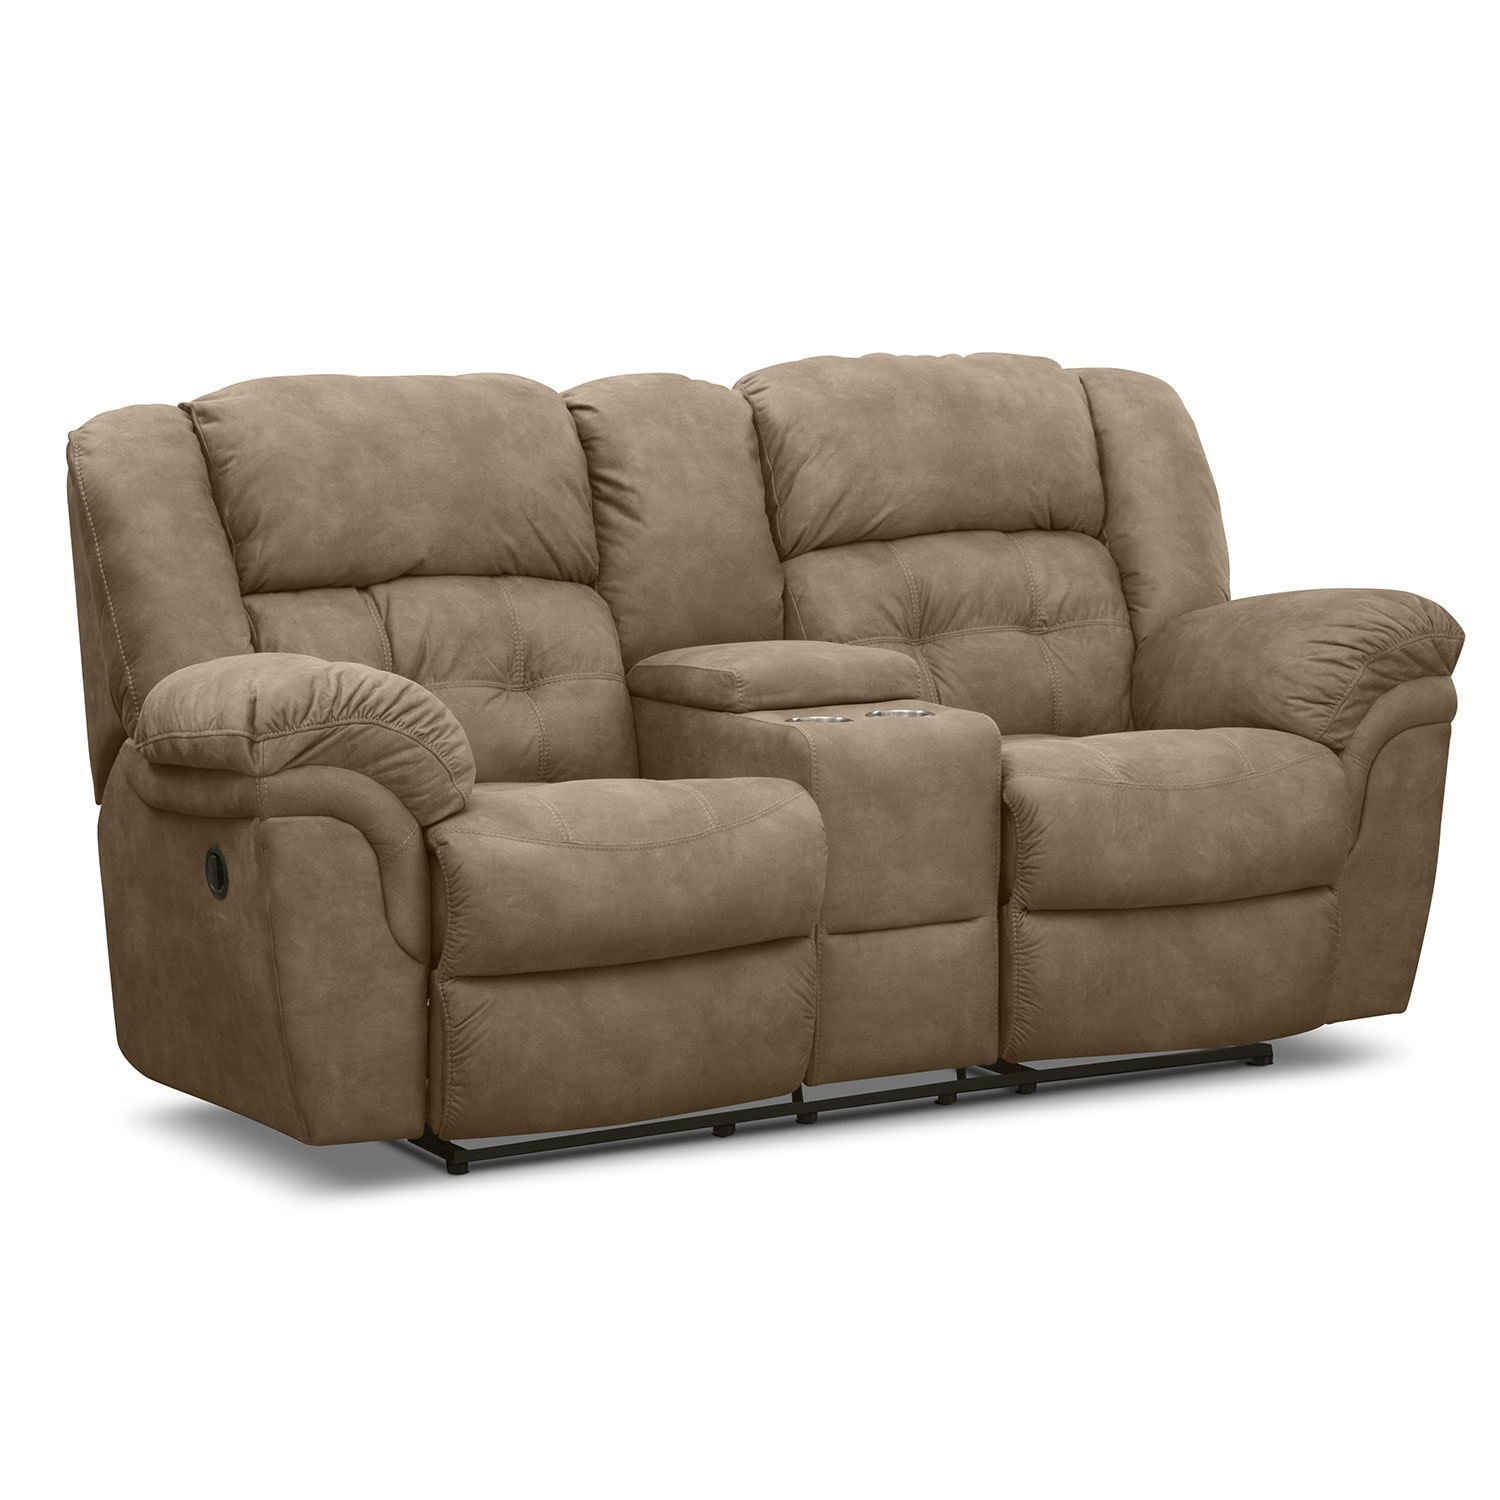 Loveseats Living Room Seating American Signature Furniture